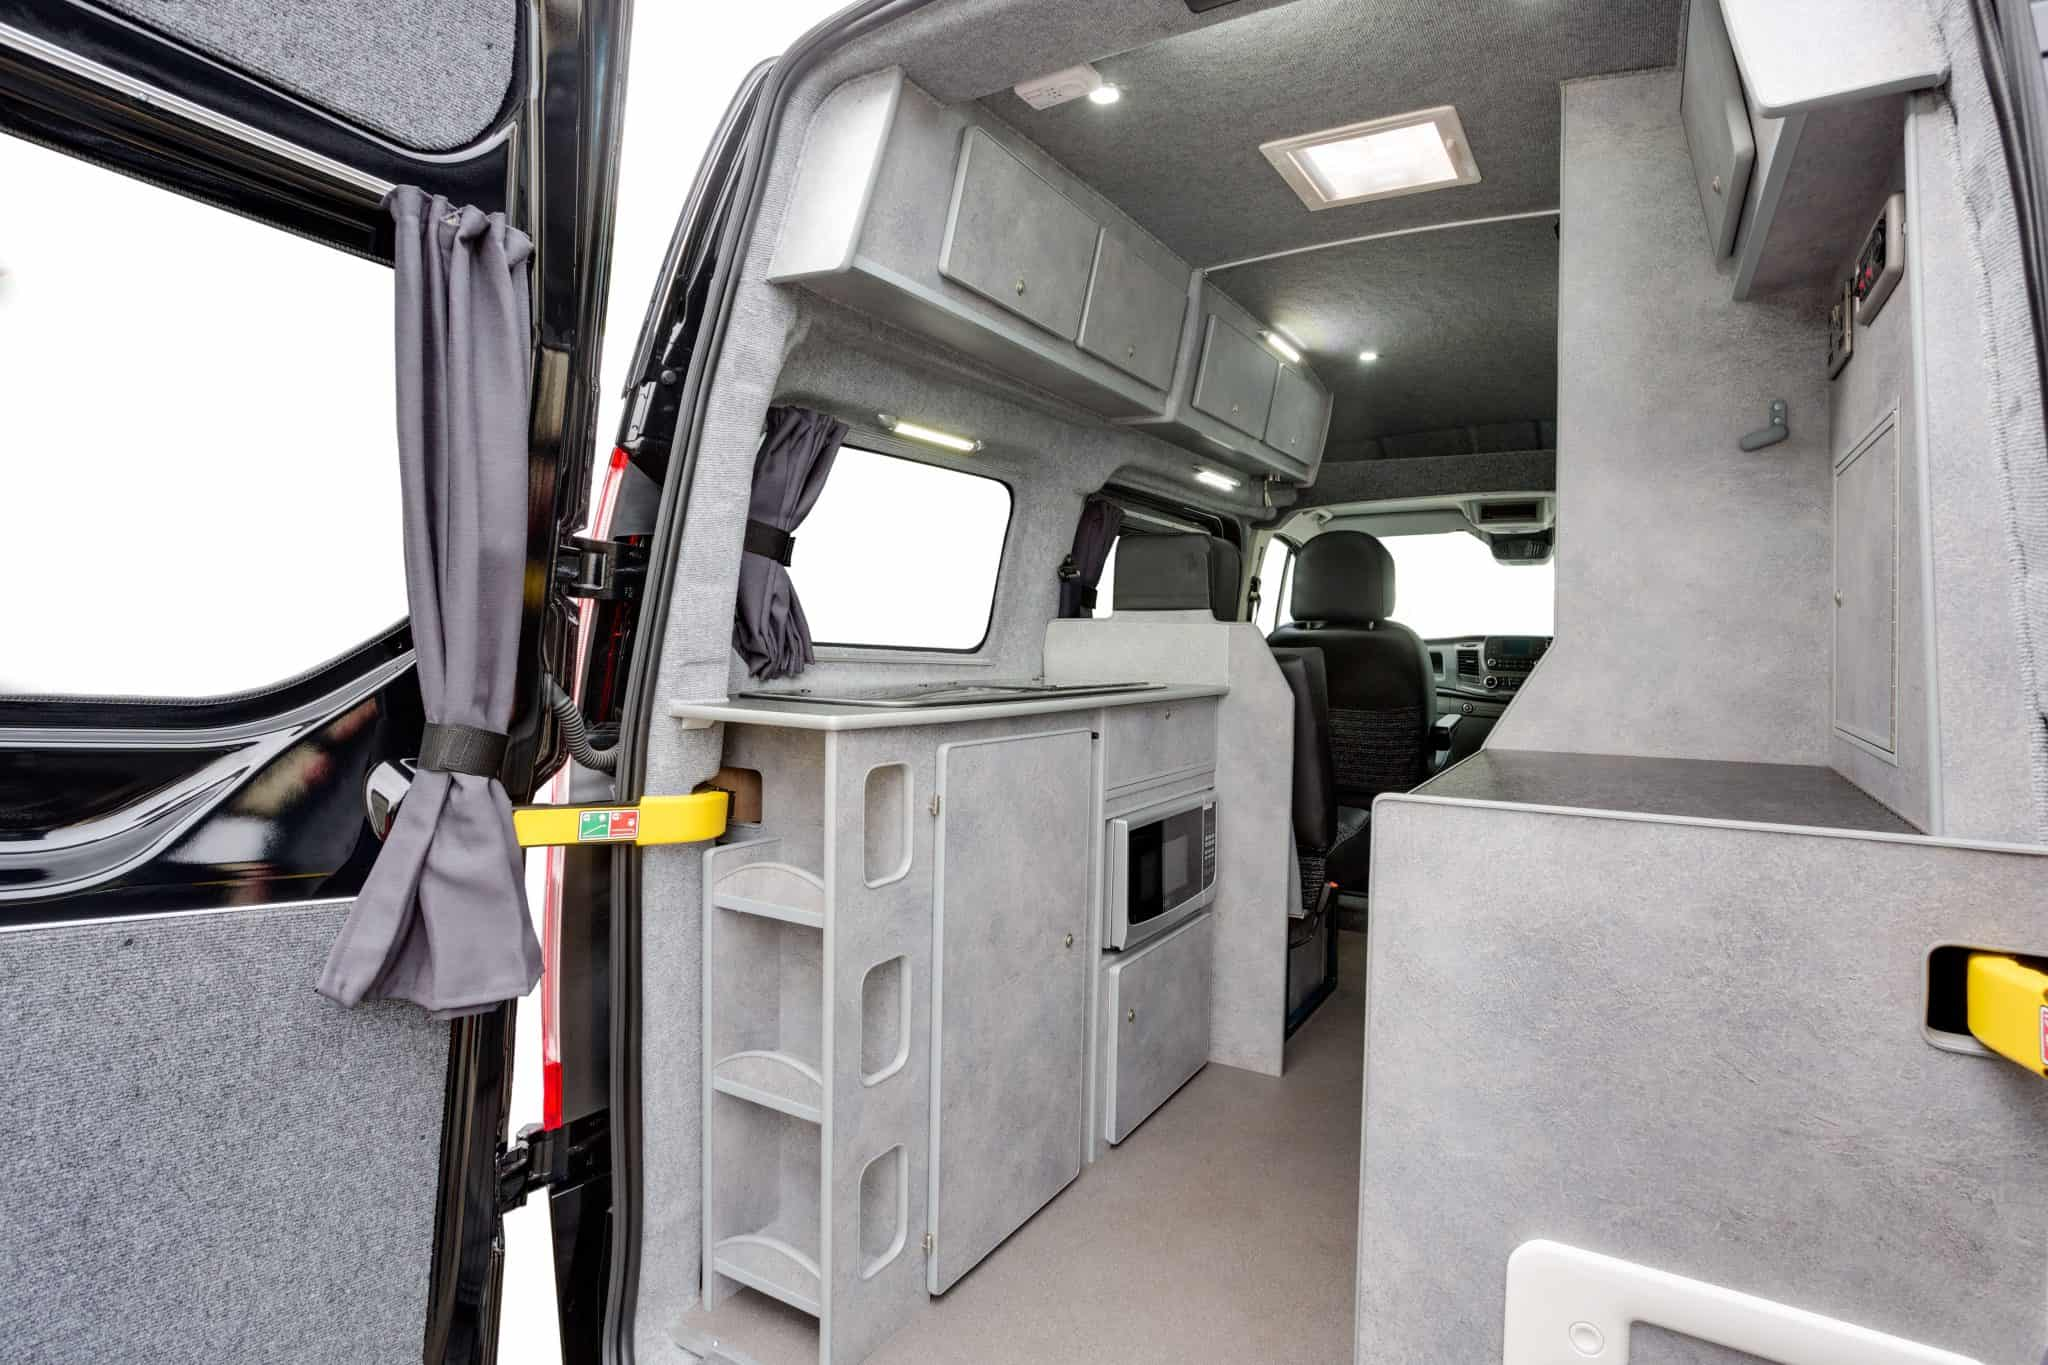 Ford Occasion Campervans for Sale, Ford Occasion Campervans for Sale, Leisuredrive, Leisuredrive